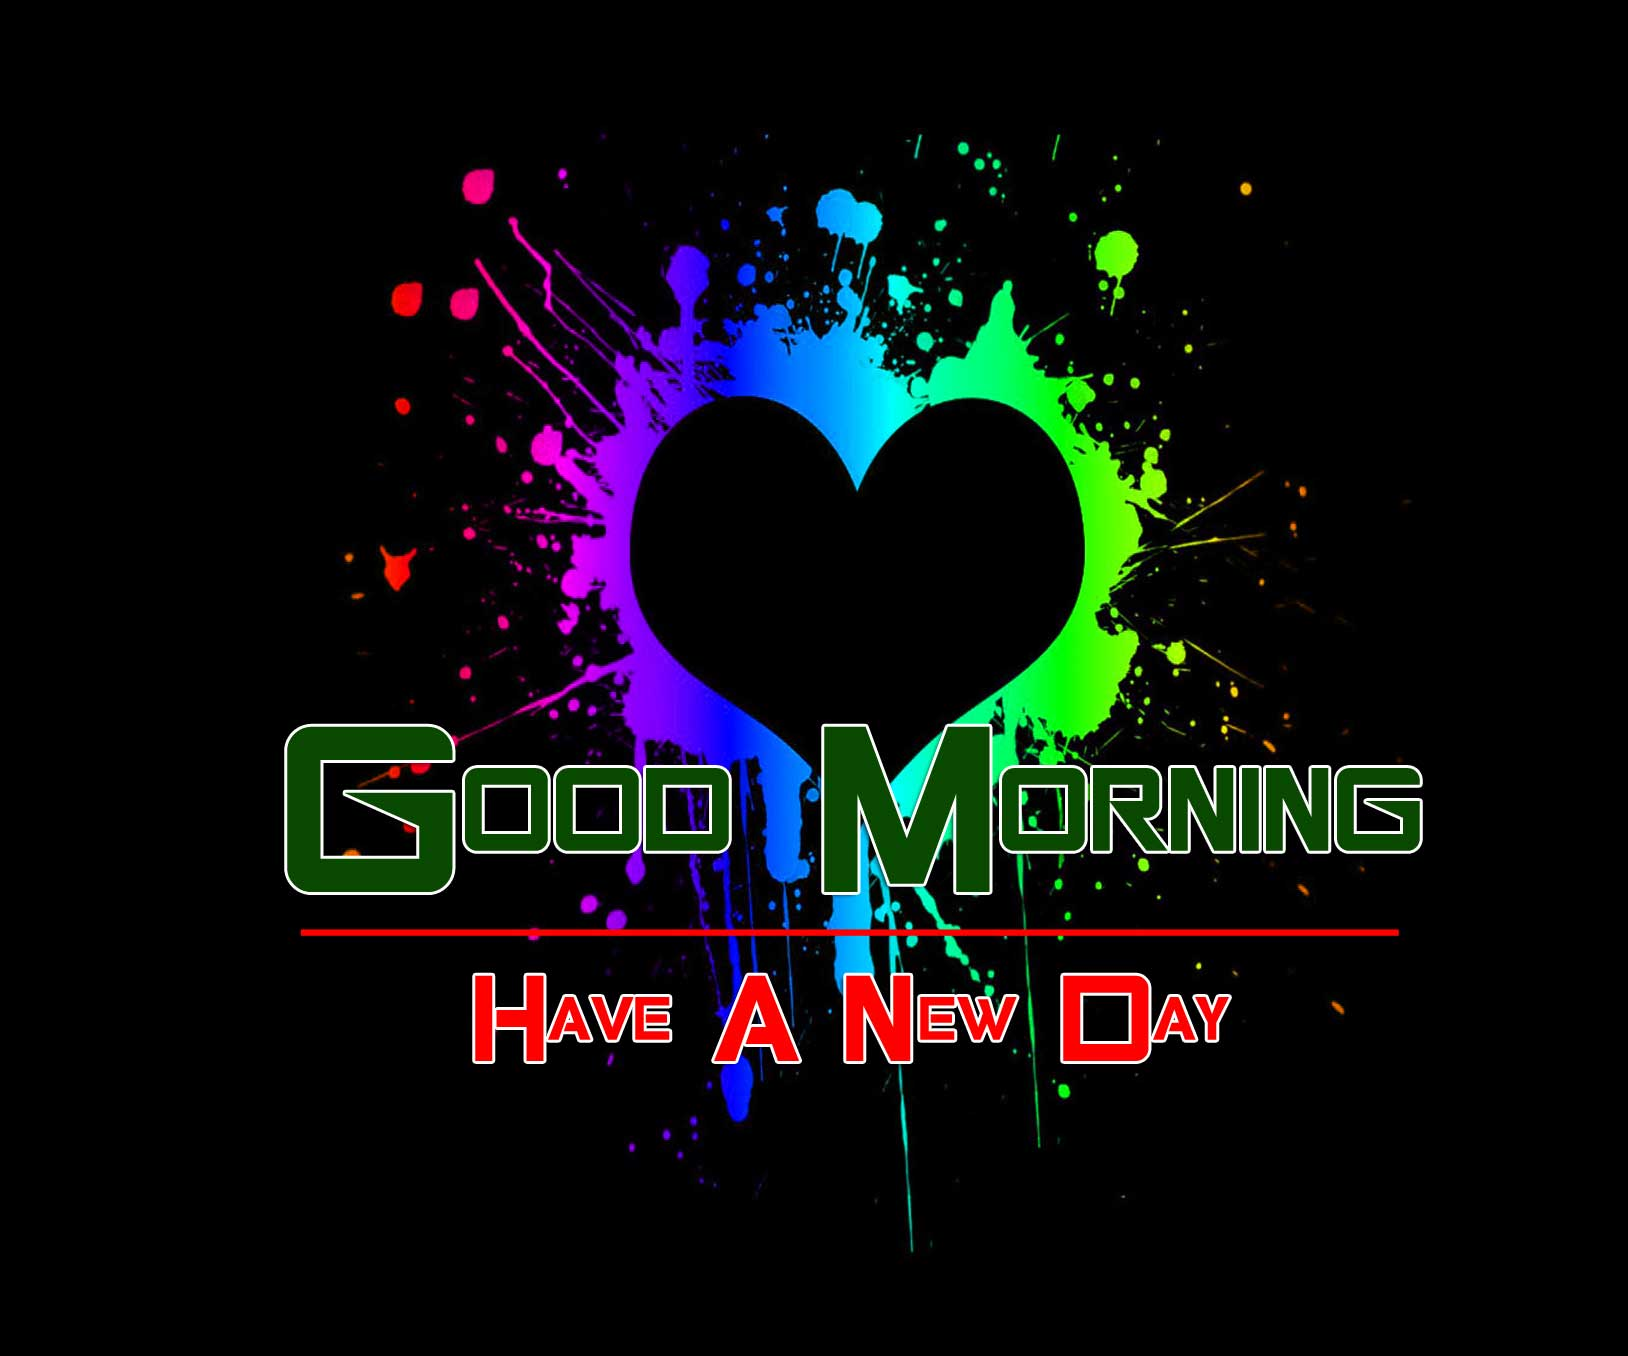 Wonderful Good Morning 4k Images Download for Whatsapp